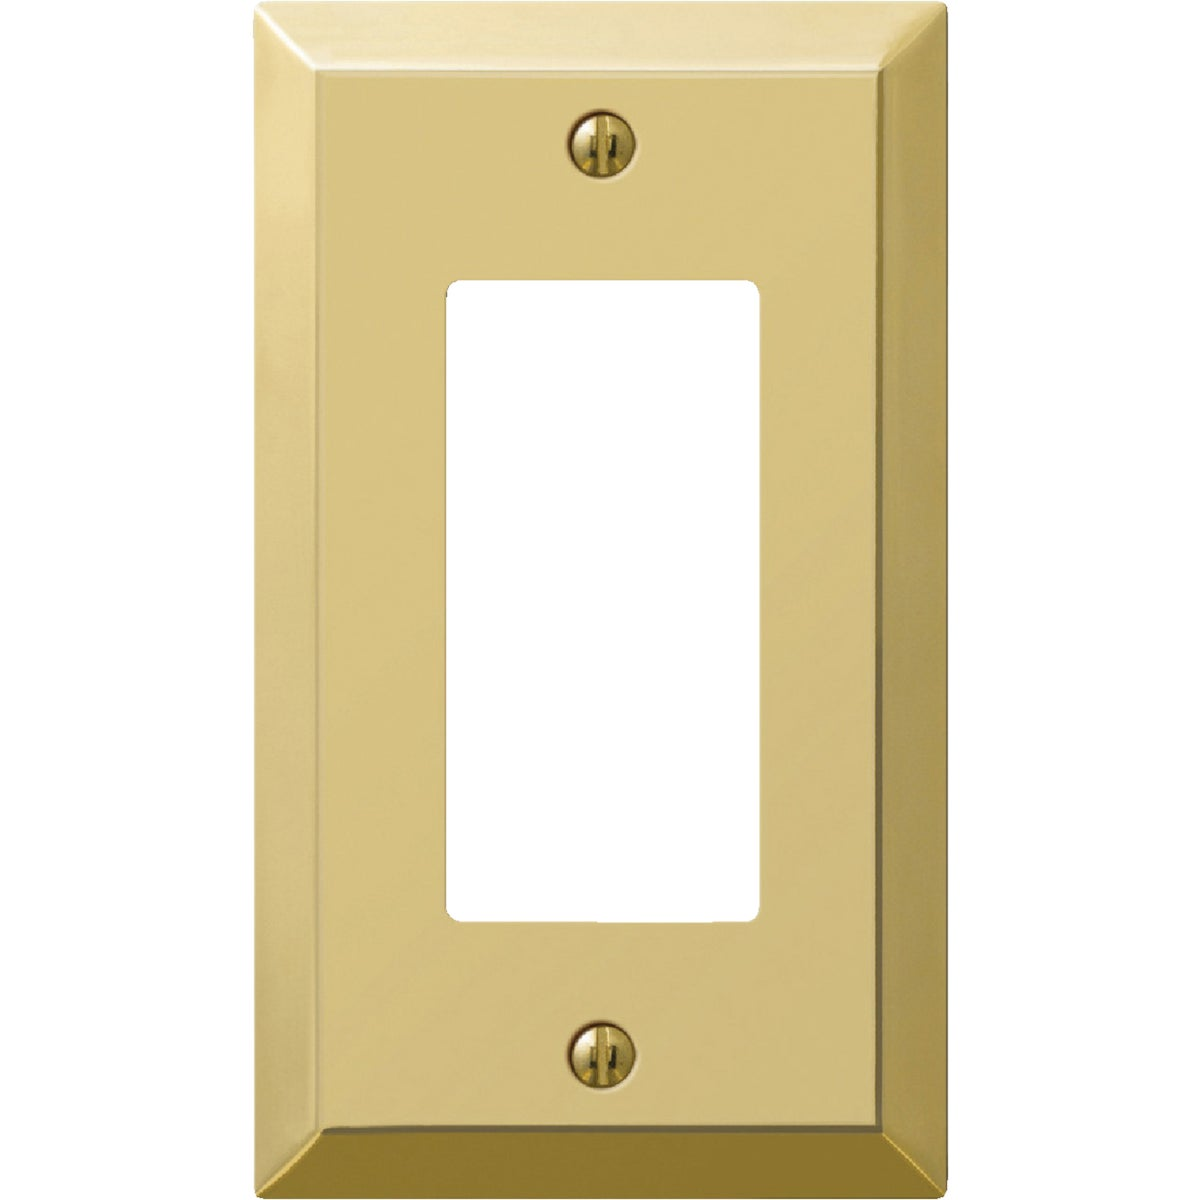 BRASS GFI WALLPLATE - 9BS117 by Jackson Deerfield Mf